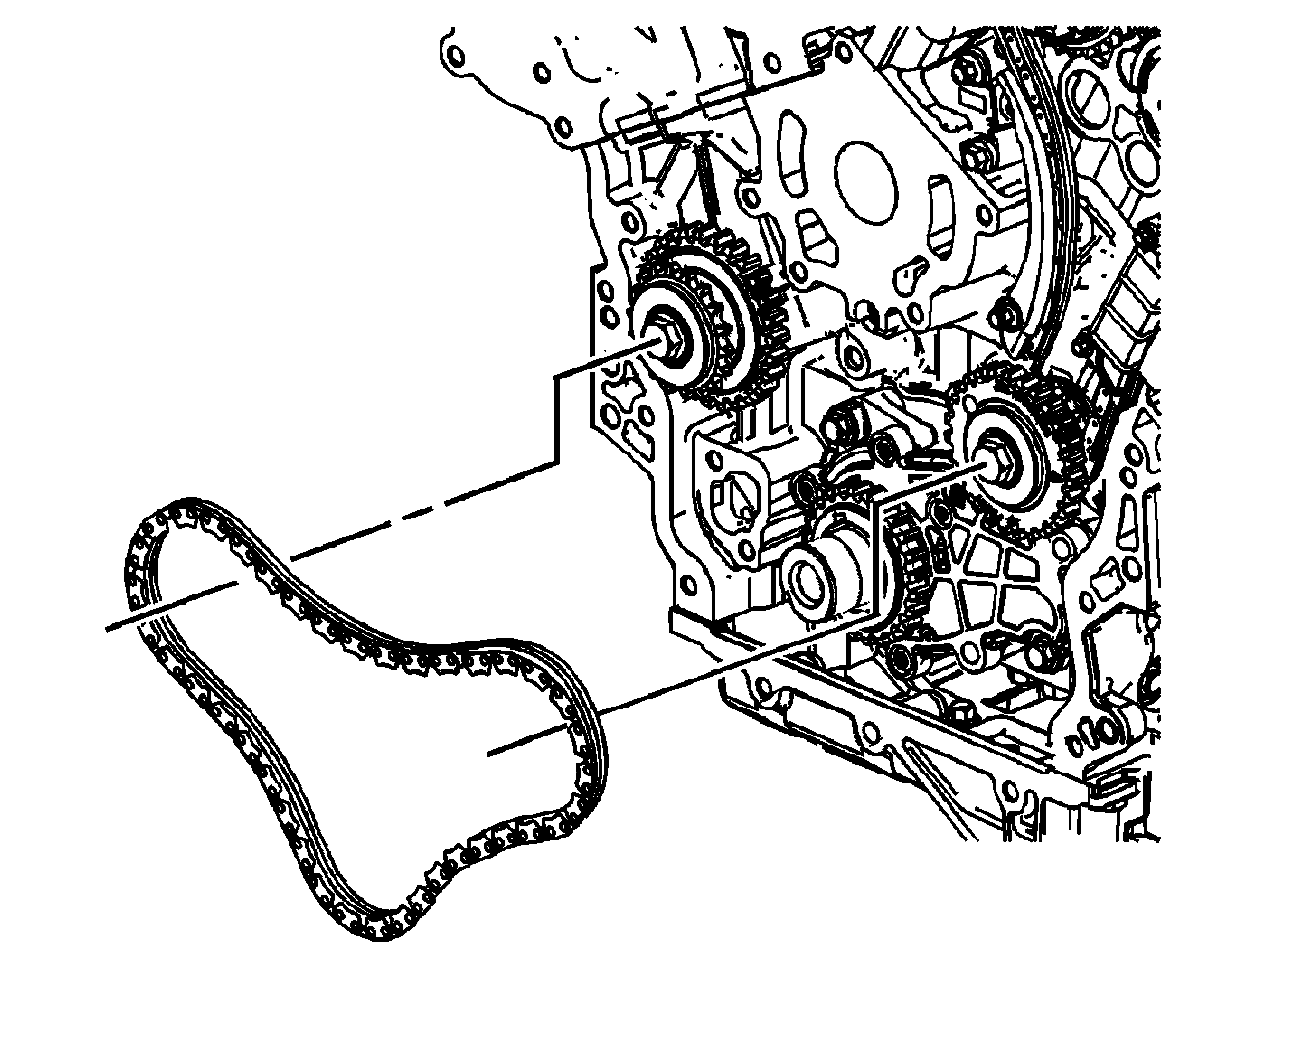 2008 Suzuki XL7 Timing Chain Diagram